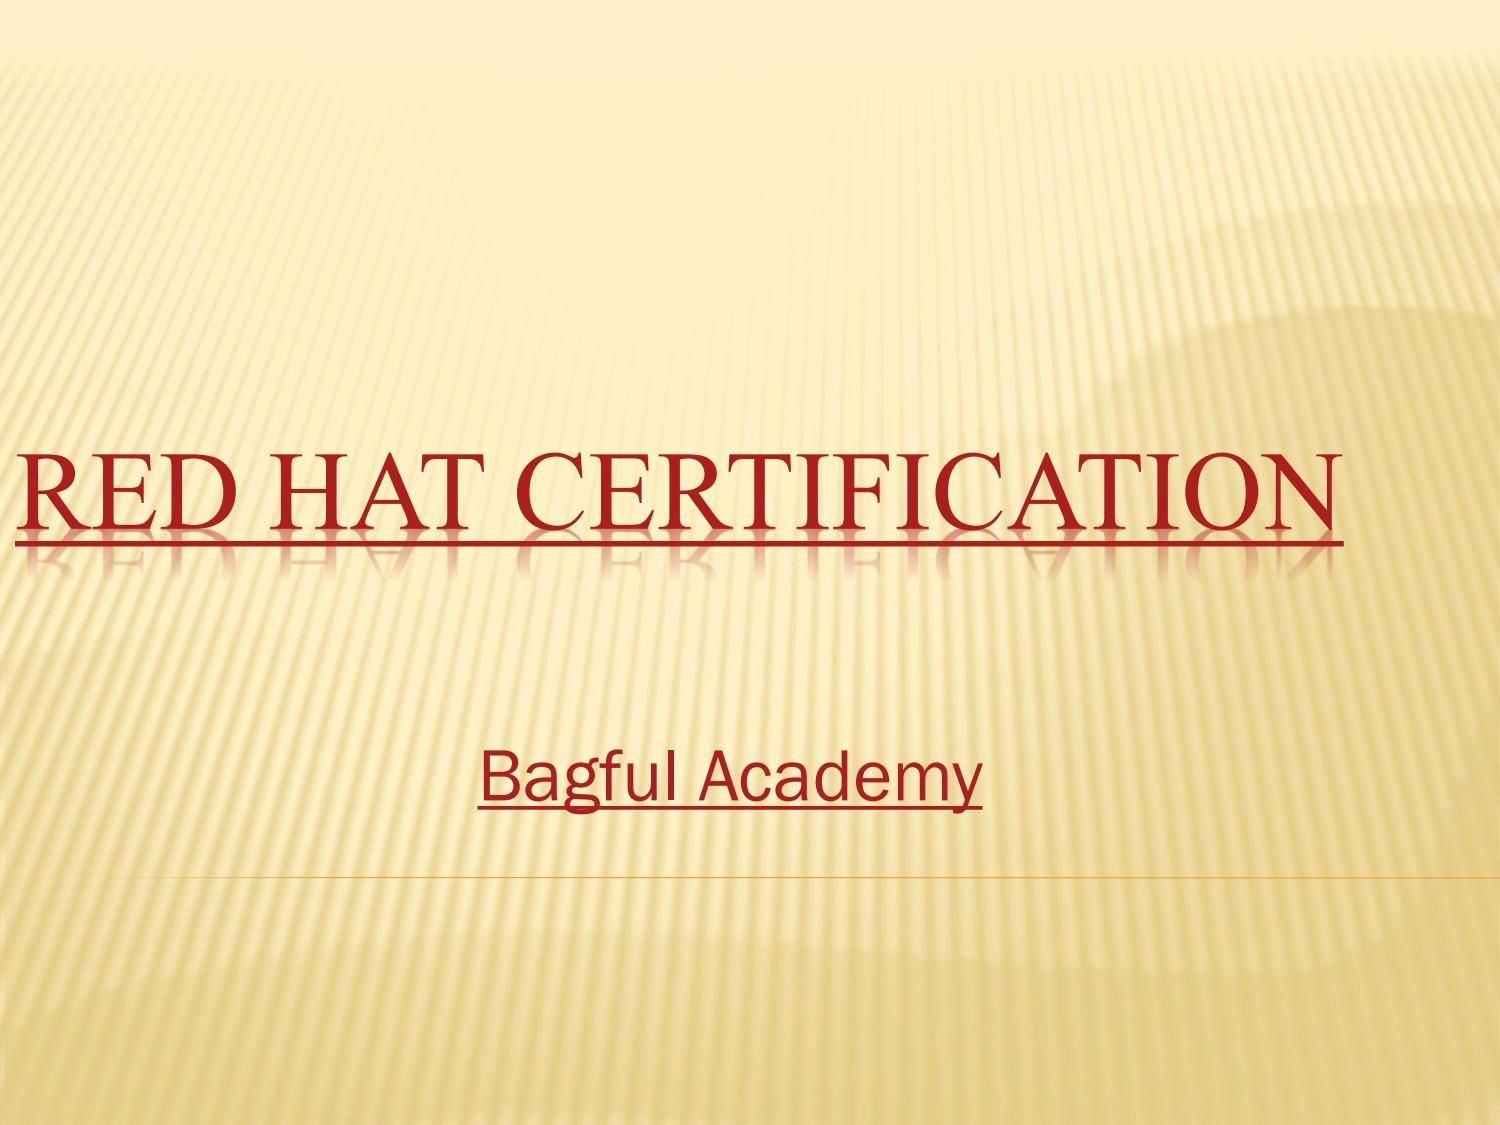 Red hat certification at bagful academy red hats red hat certification at bagful academy xflitez Images